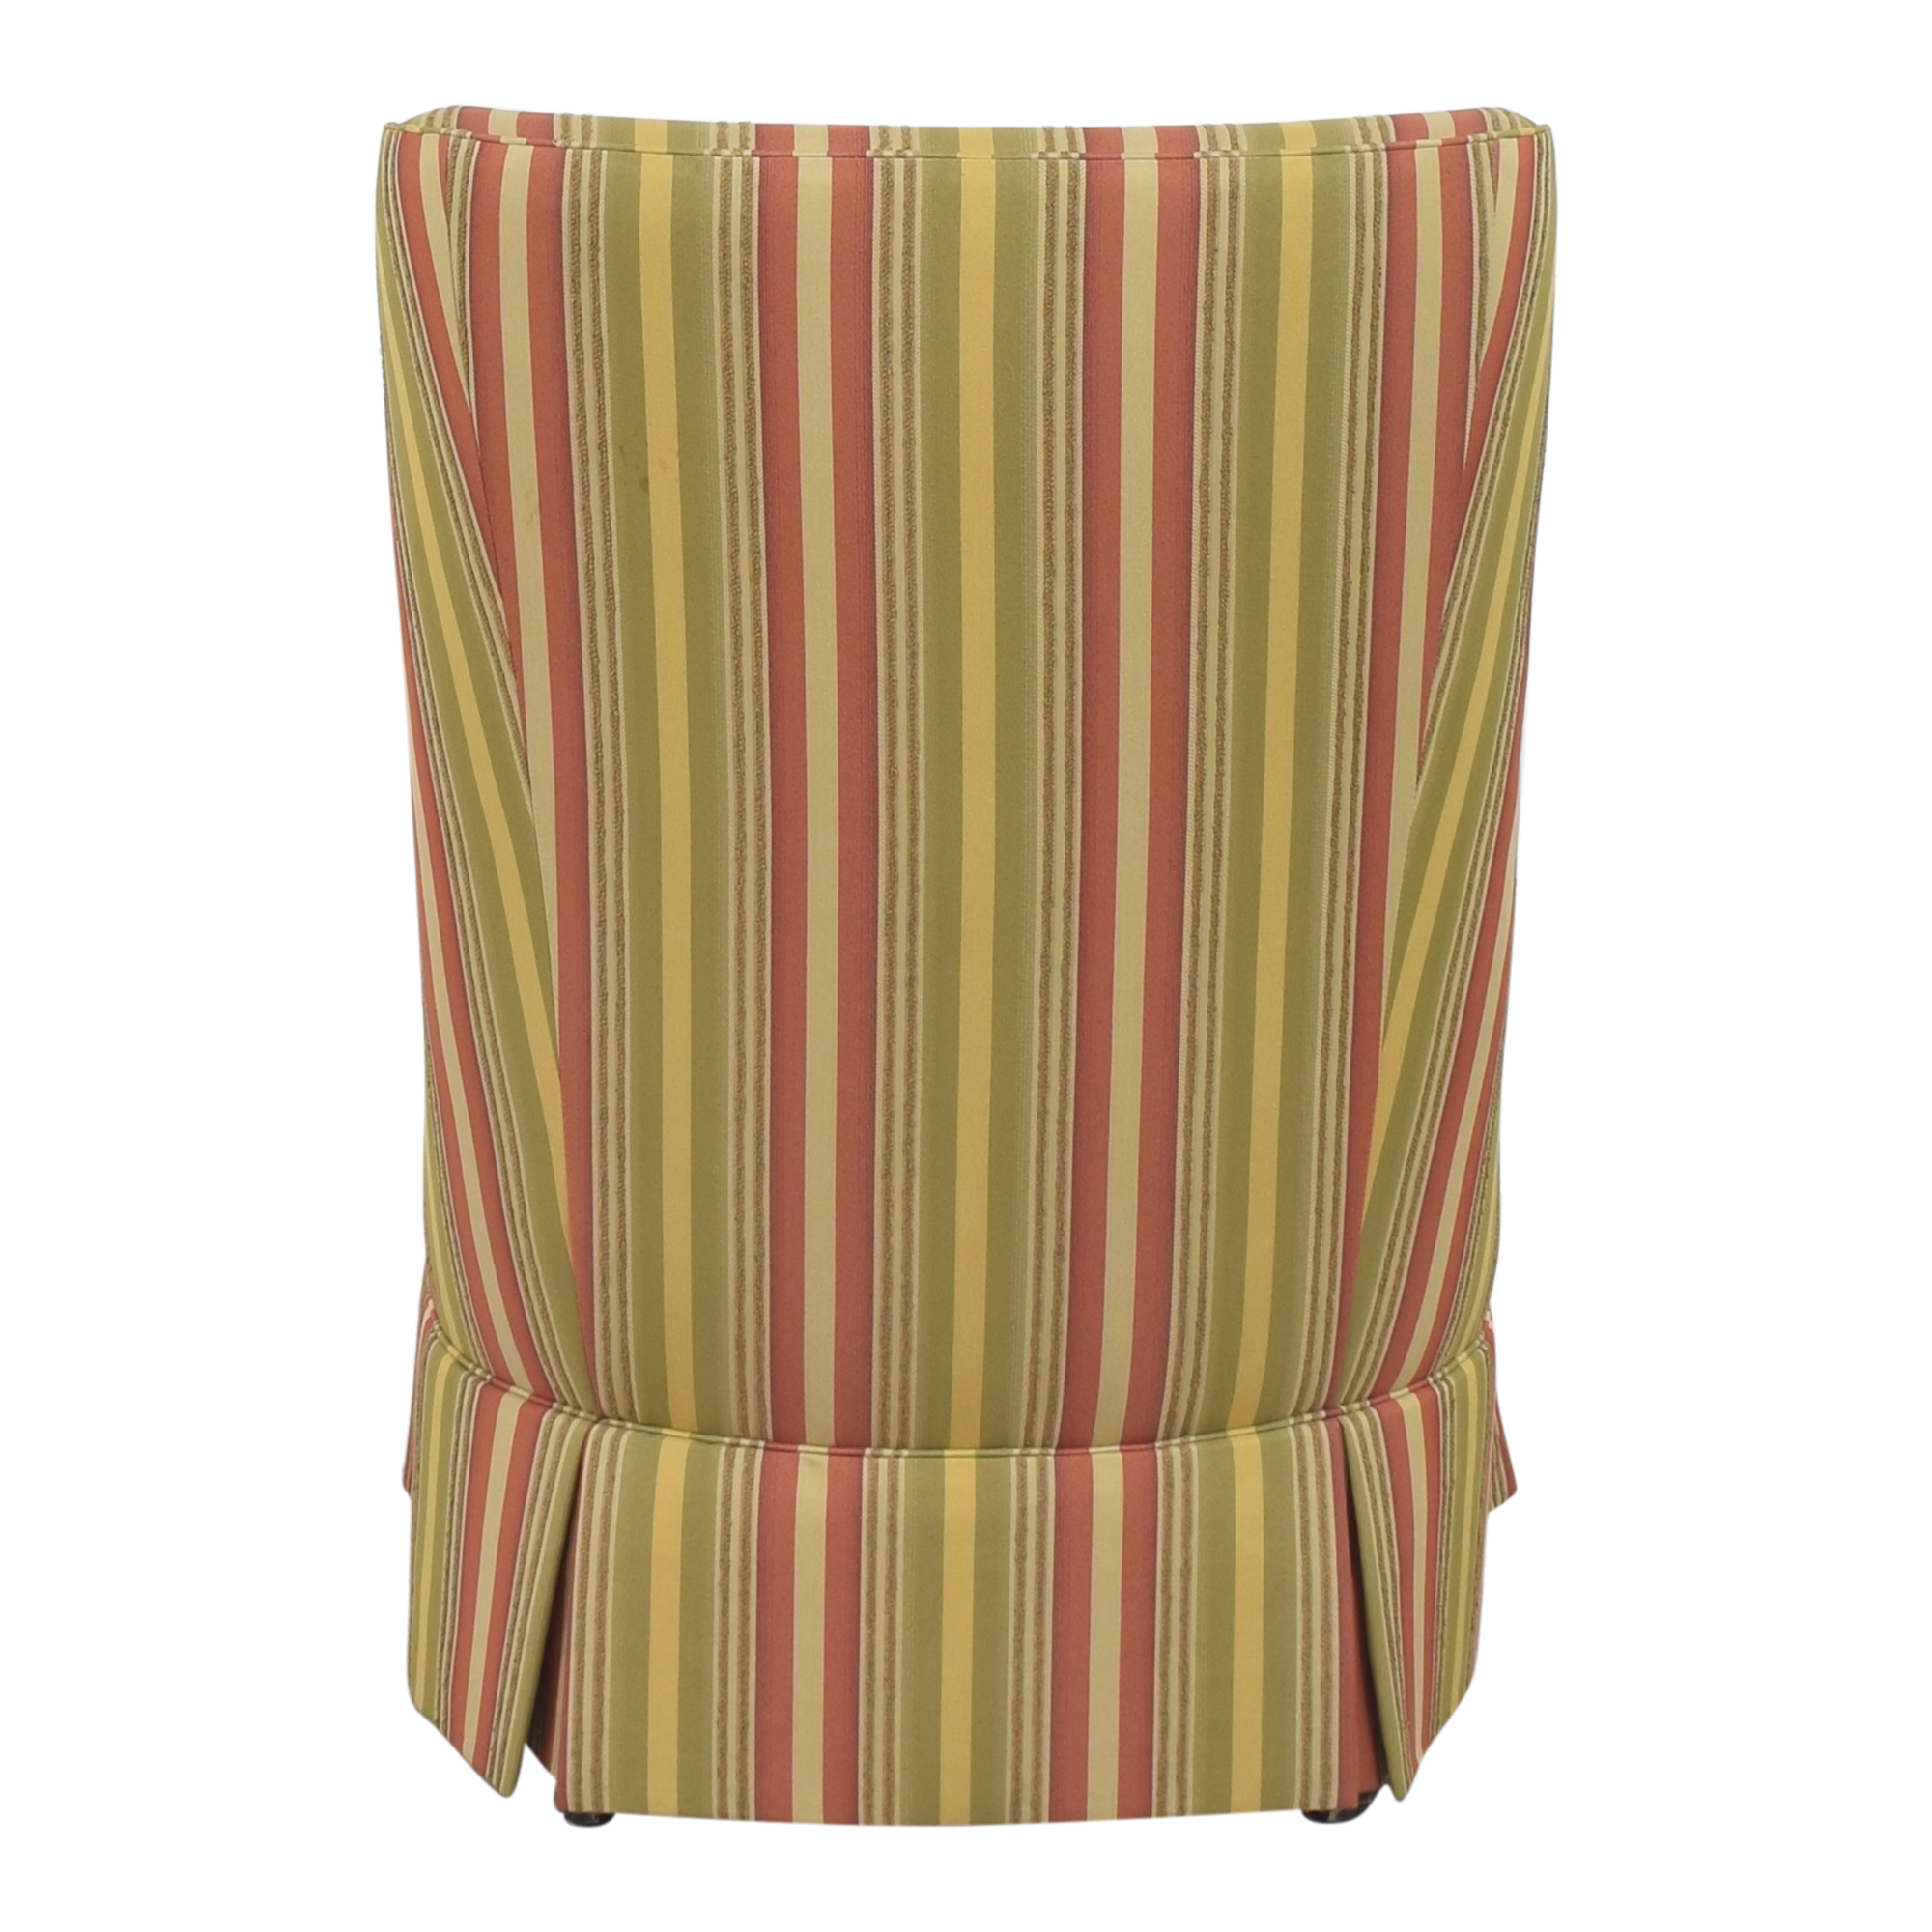 shop Theodore Alexander Theodore Alexander Althorp Living History Accent Chair online